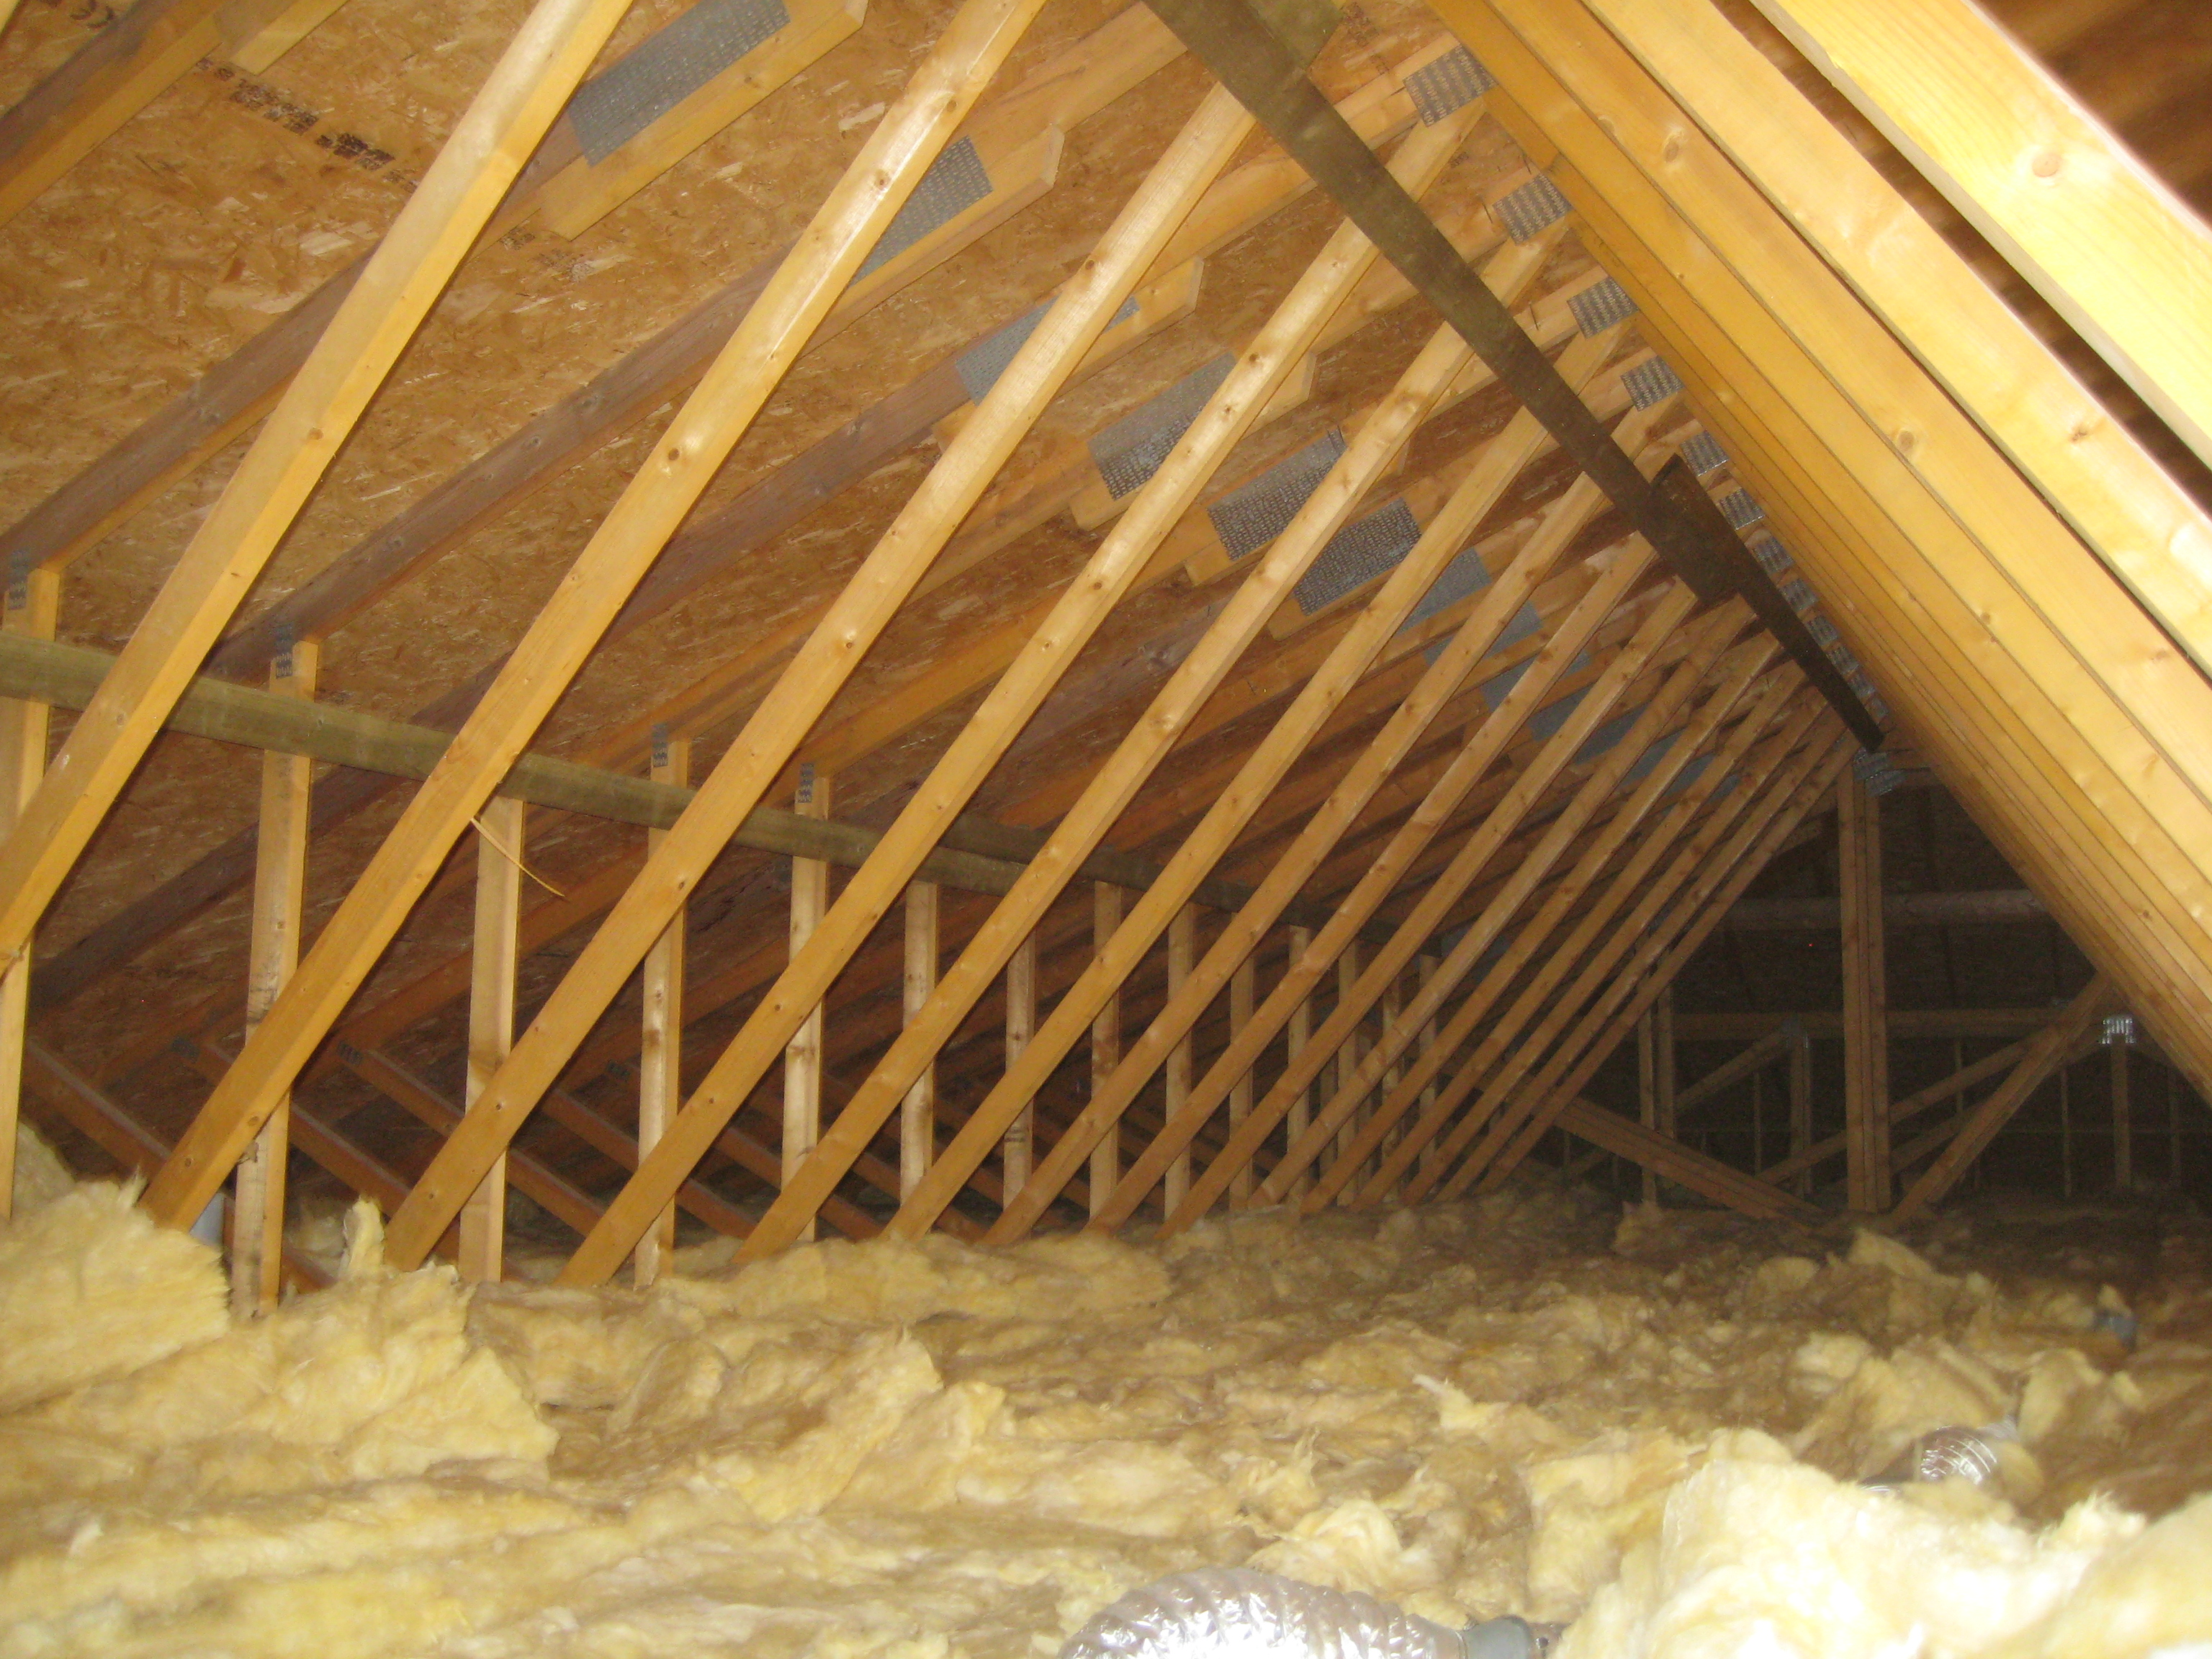 Loft Insulation to reduce heat loss